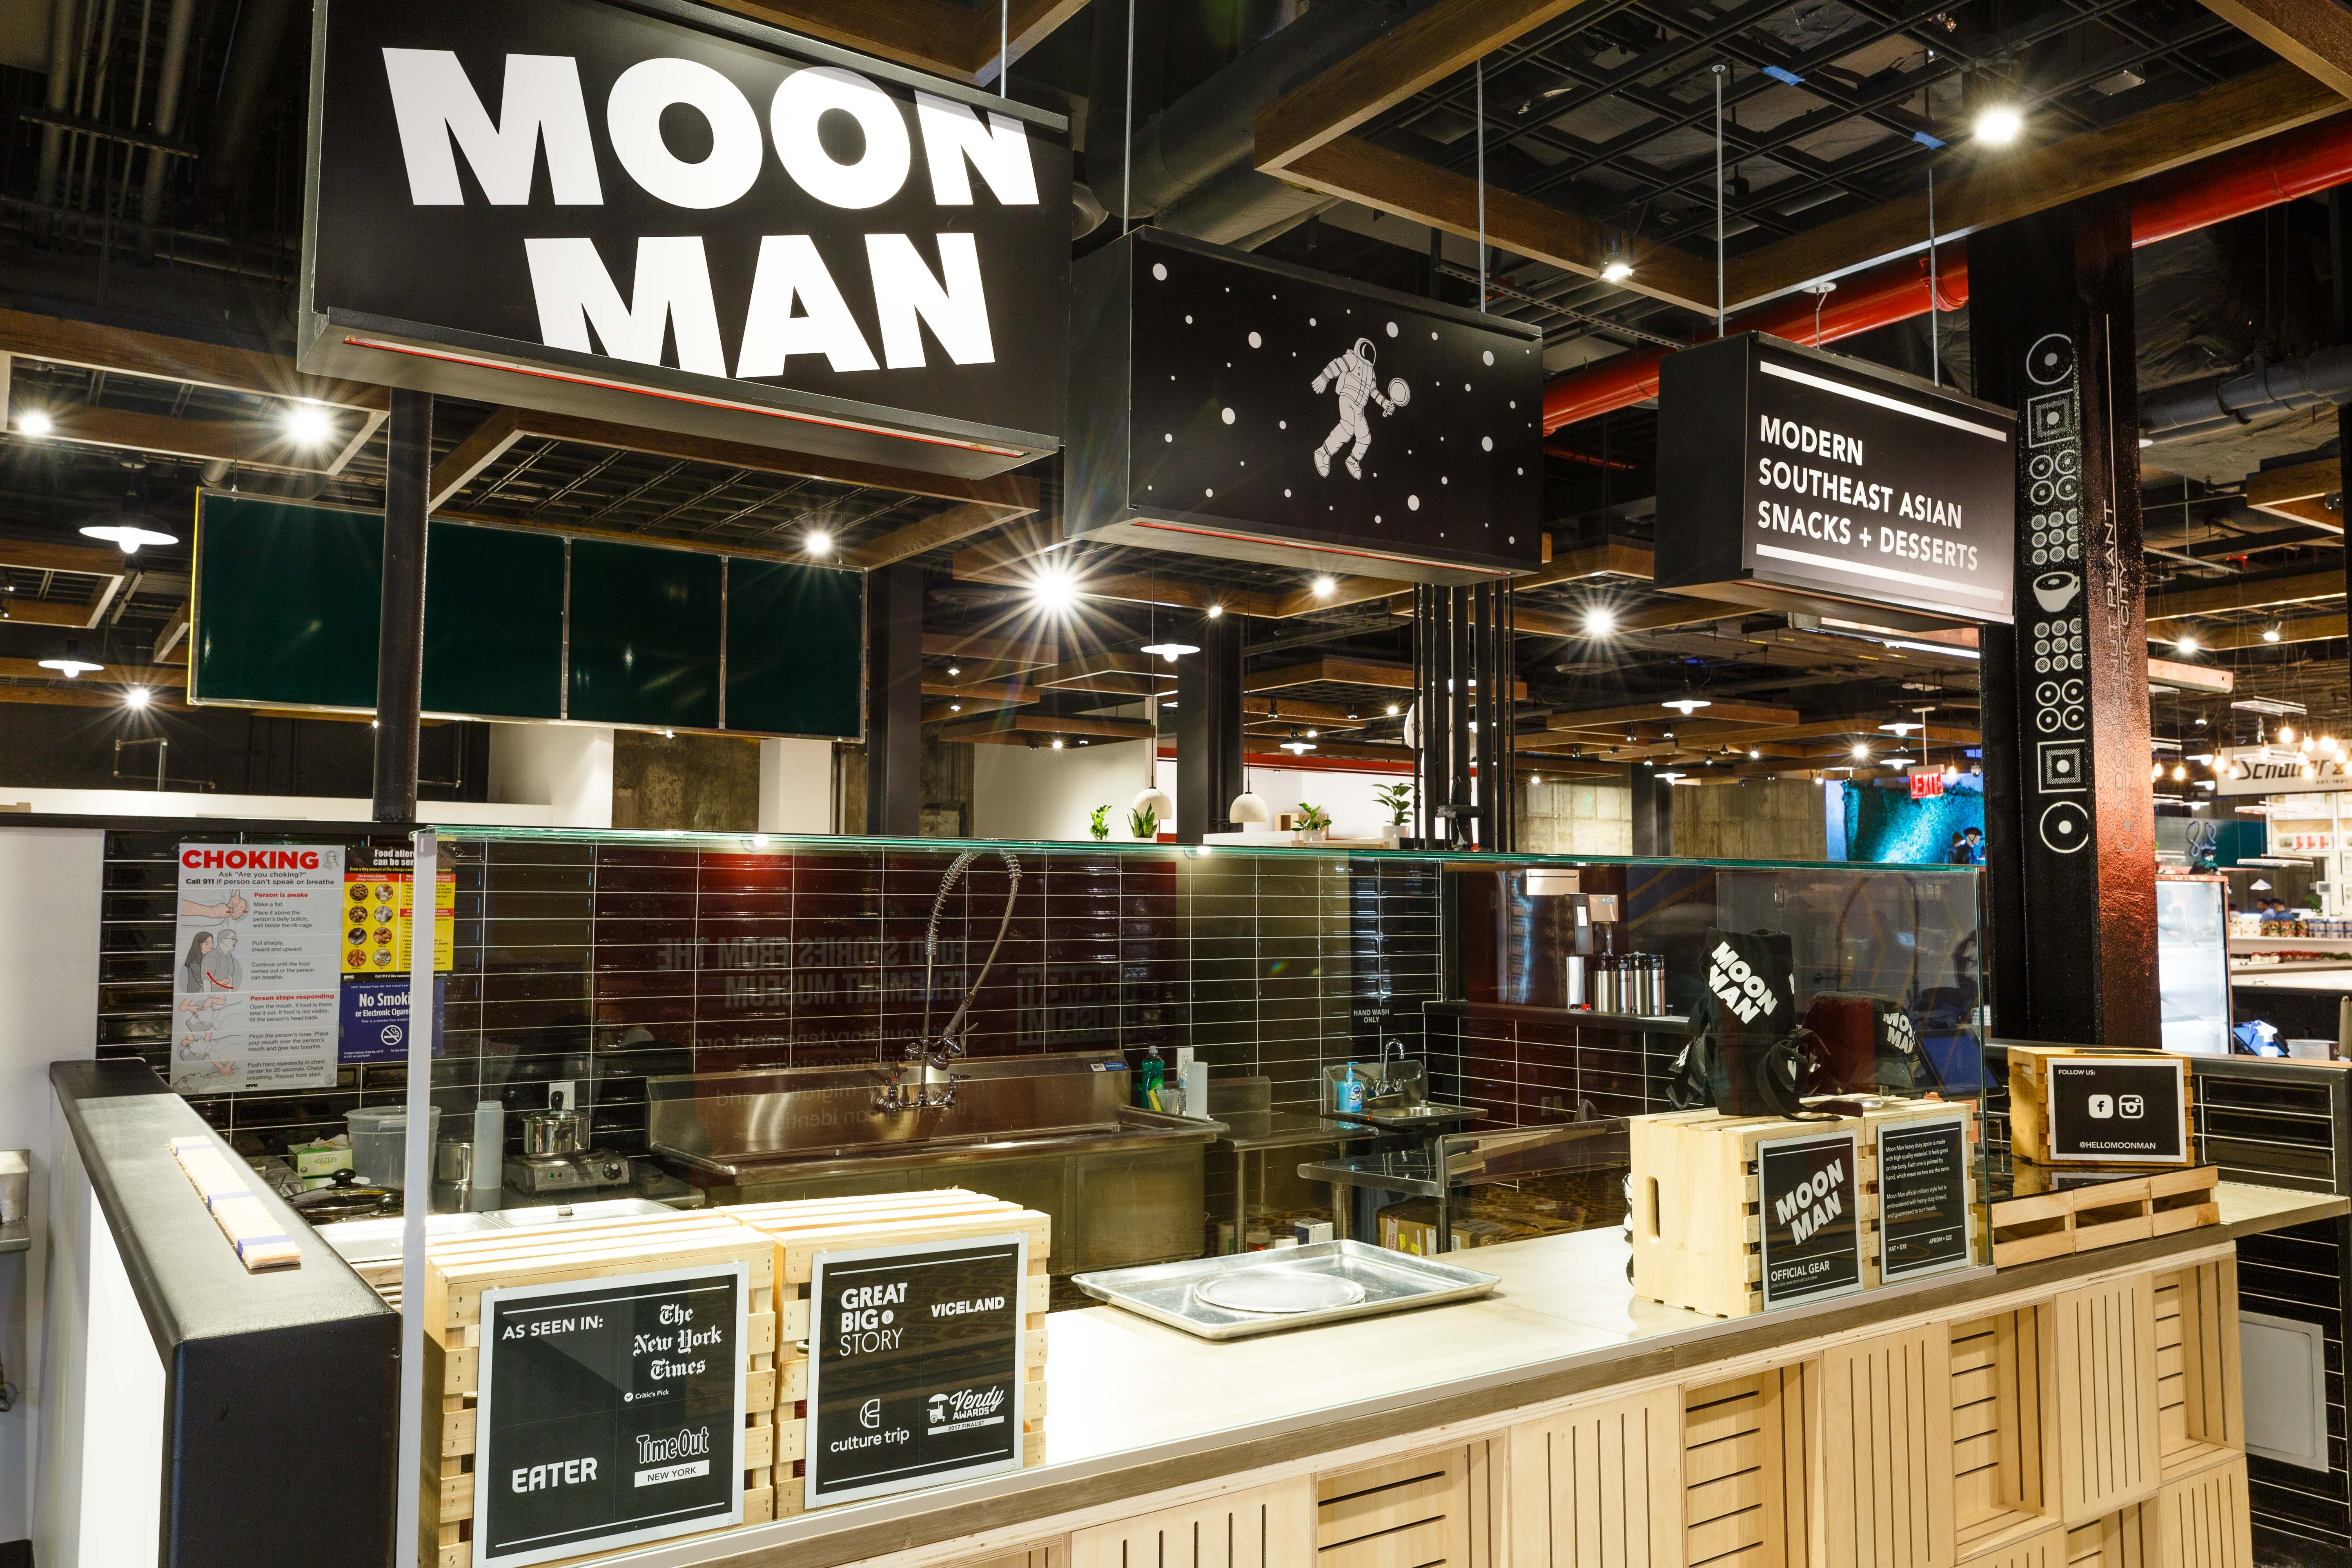 """A black sign displays """"Moon Man"""" with white lettering."""